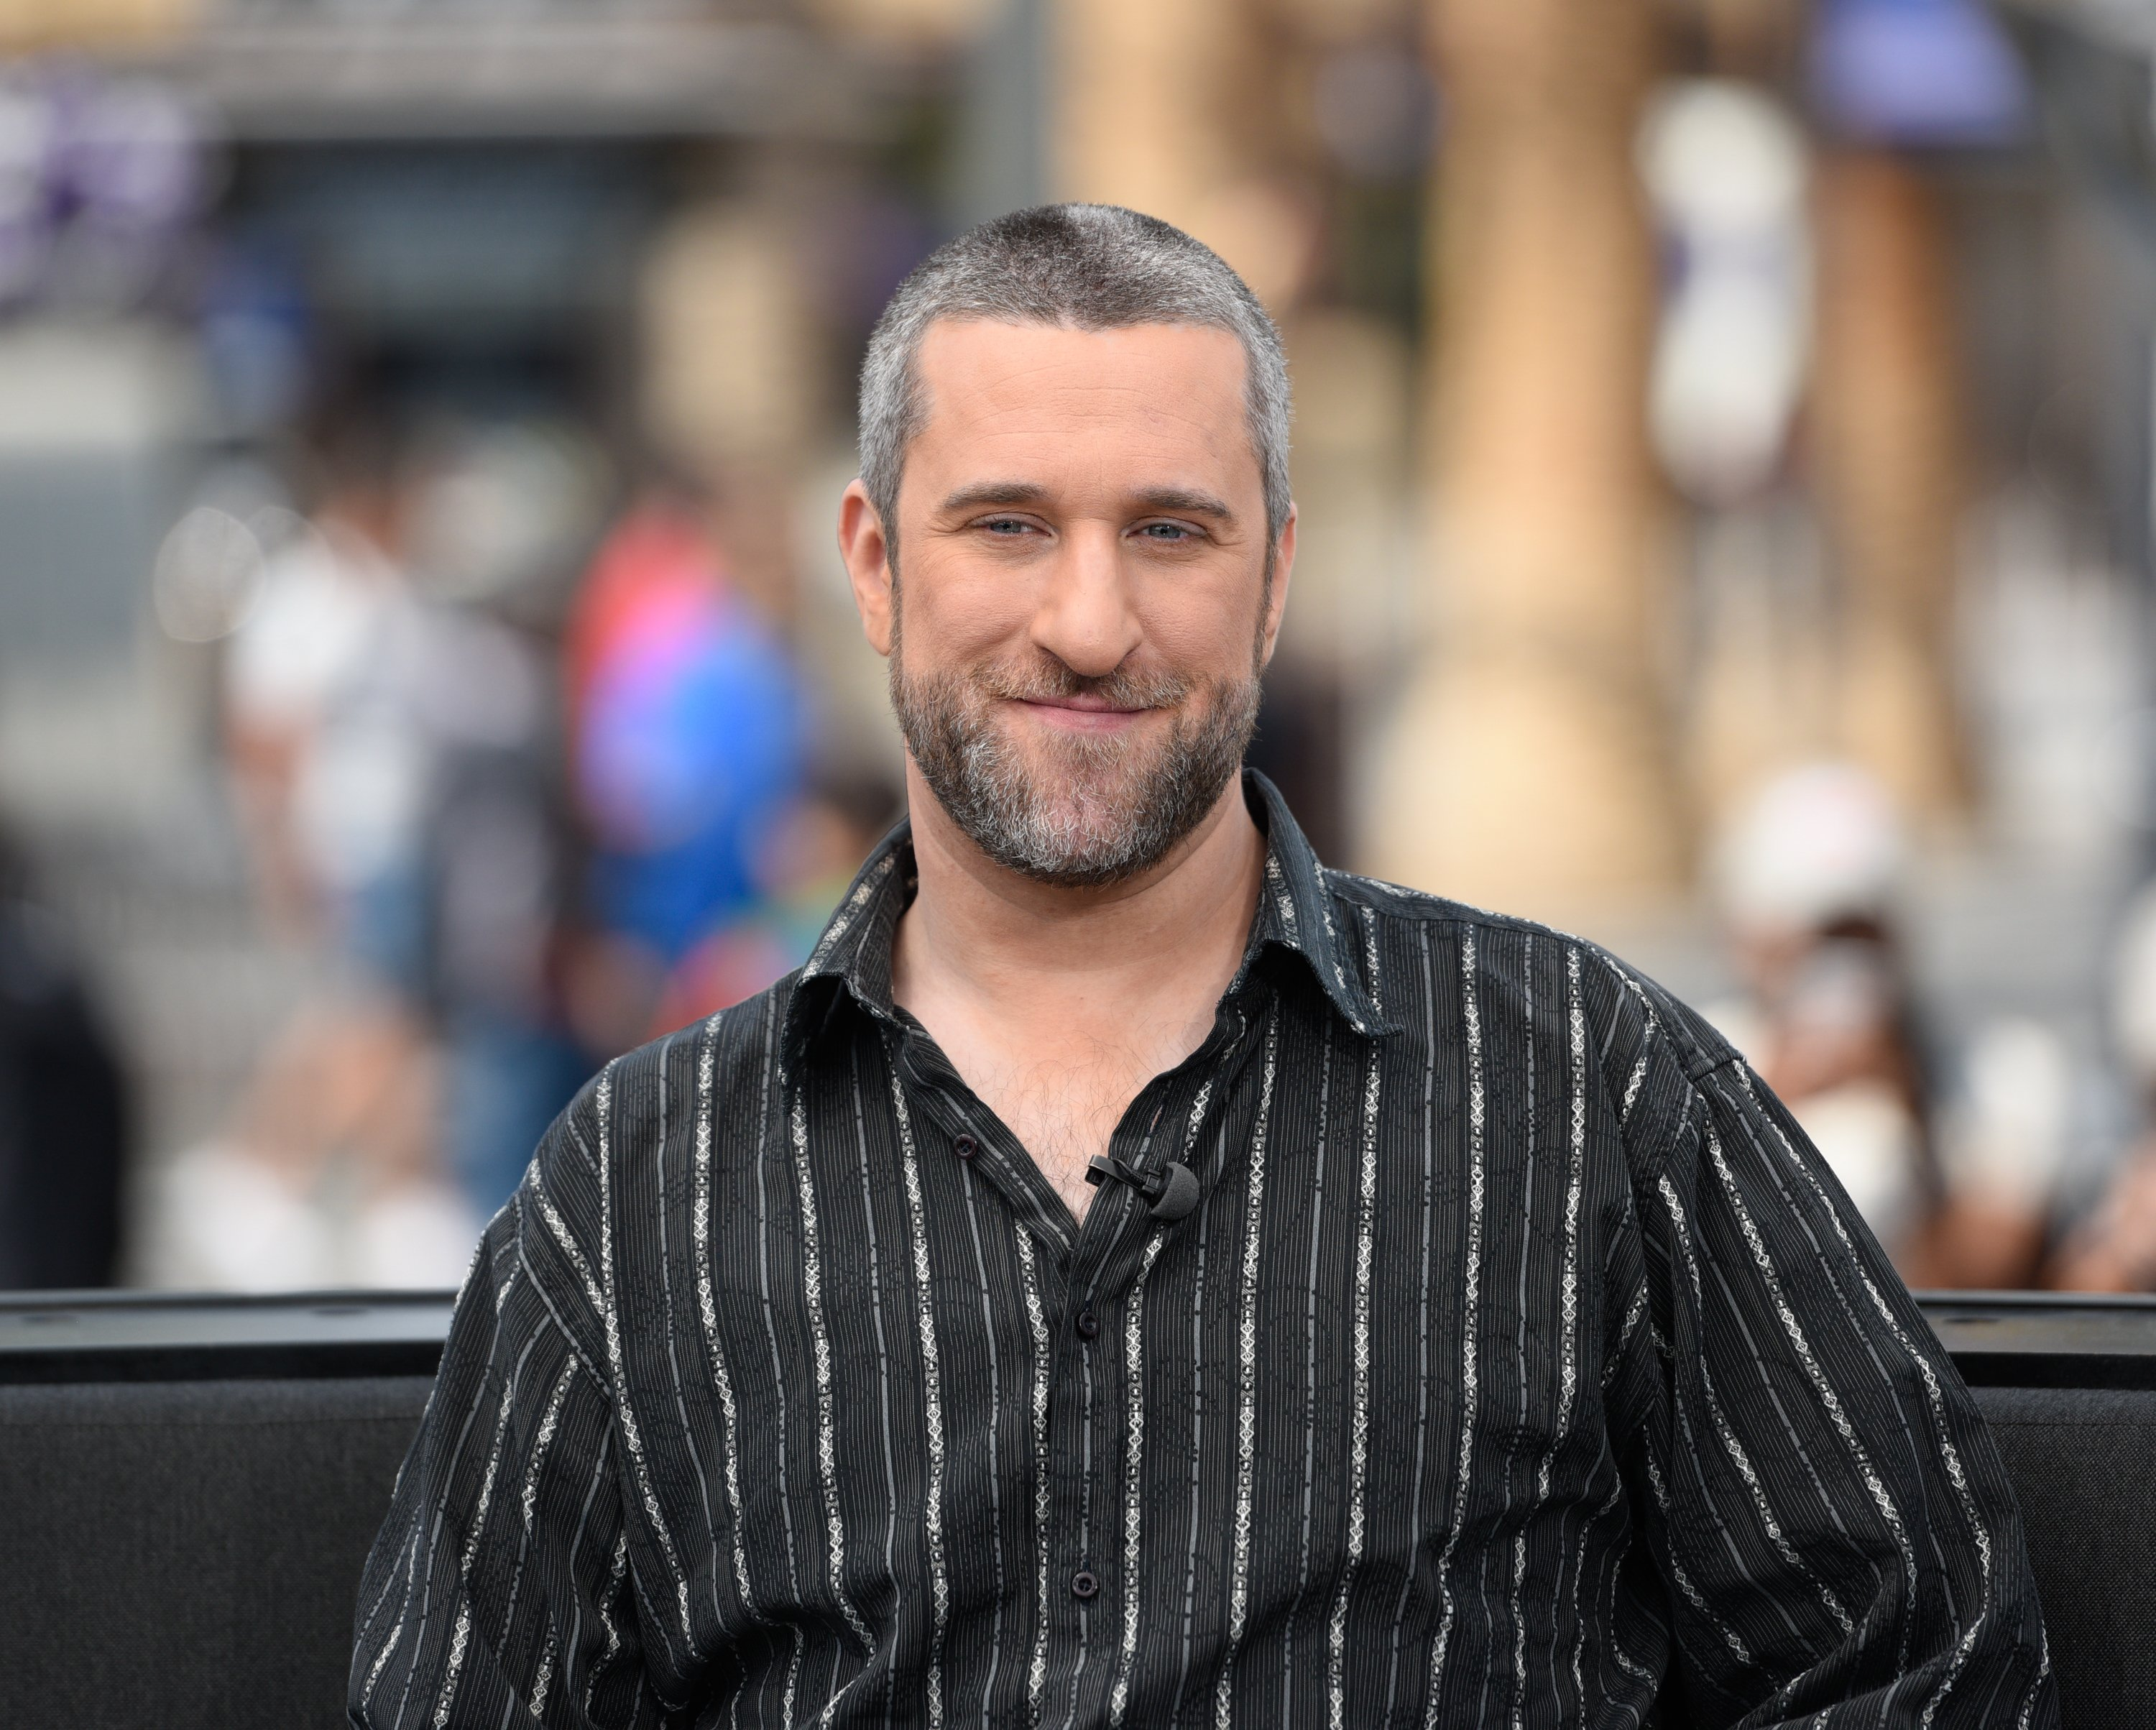 """Dustin Diamond visits """"Extra"""" at Universal Studios Hollywood on May 16, 2016 in Universal City, California.   Photo by Noel Vasquez/Getty Images"""